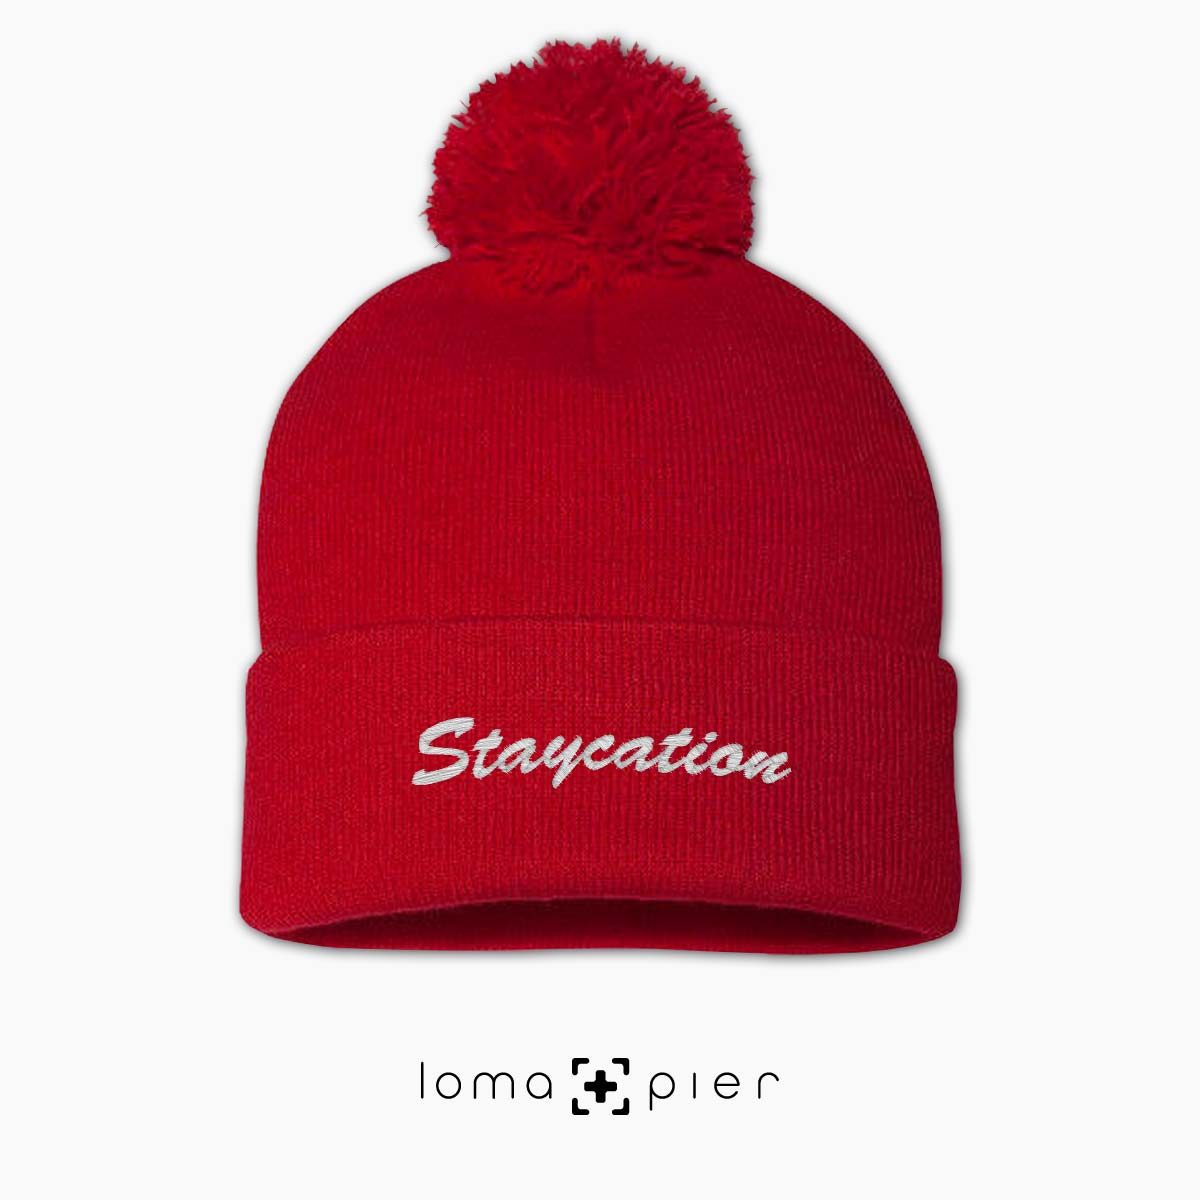 STAYCATION chill saying embroidered on a red pom pom beanie by loma+pier hat store